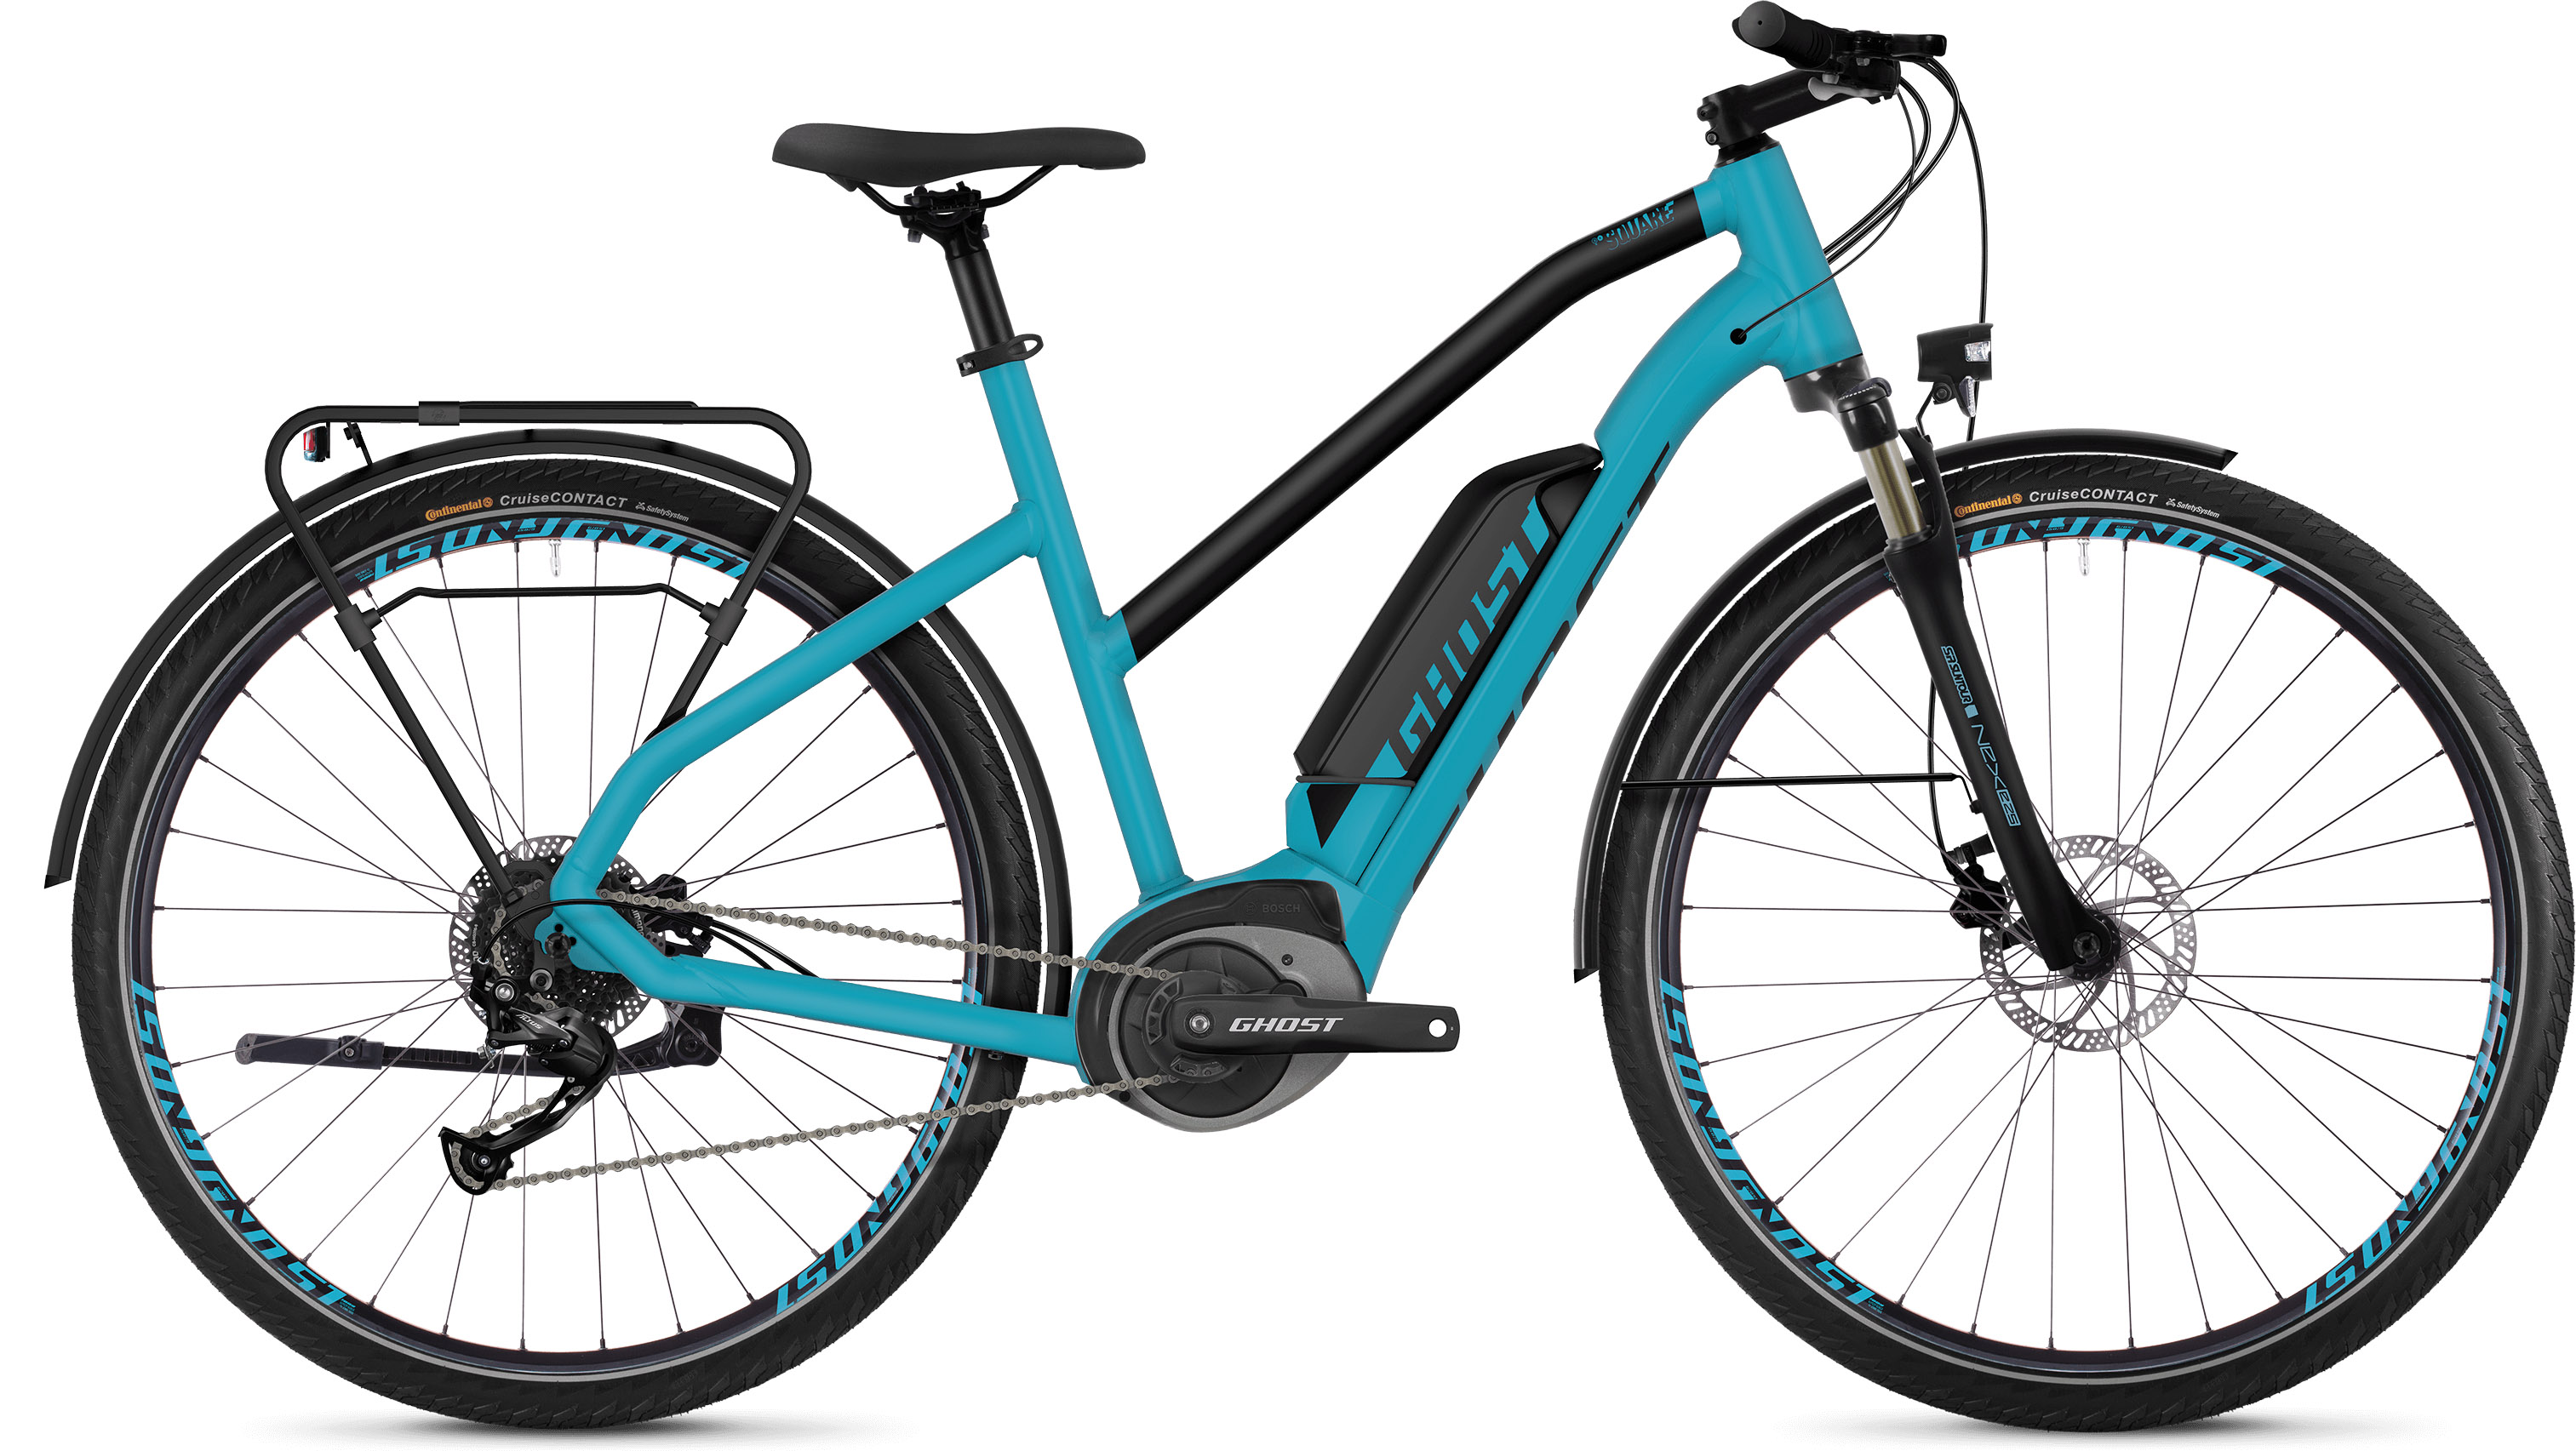 Ghost Square Trekking B1.8 Women's E-Bike (2019) | City-cykler